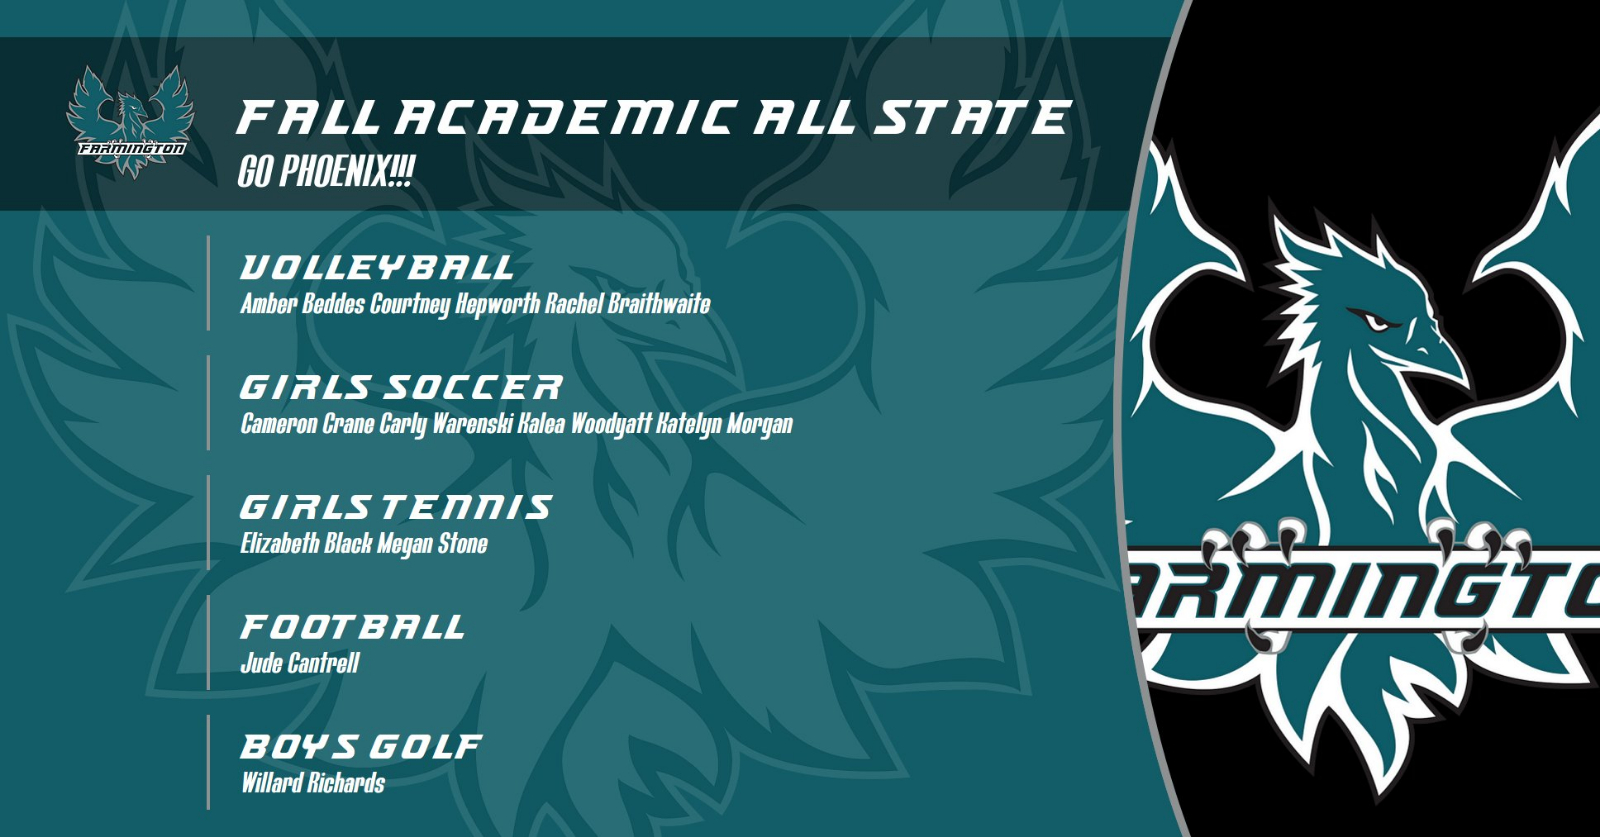 Fall Academic All-State